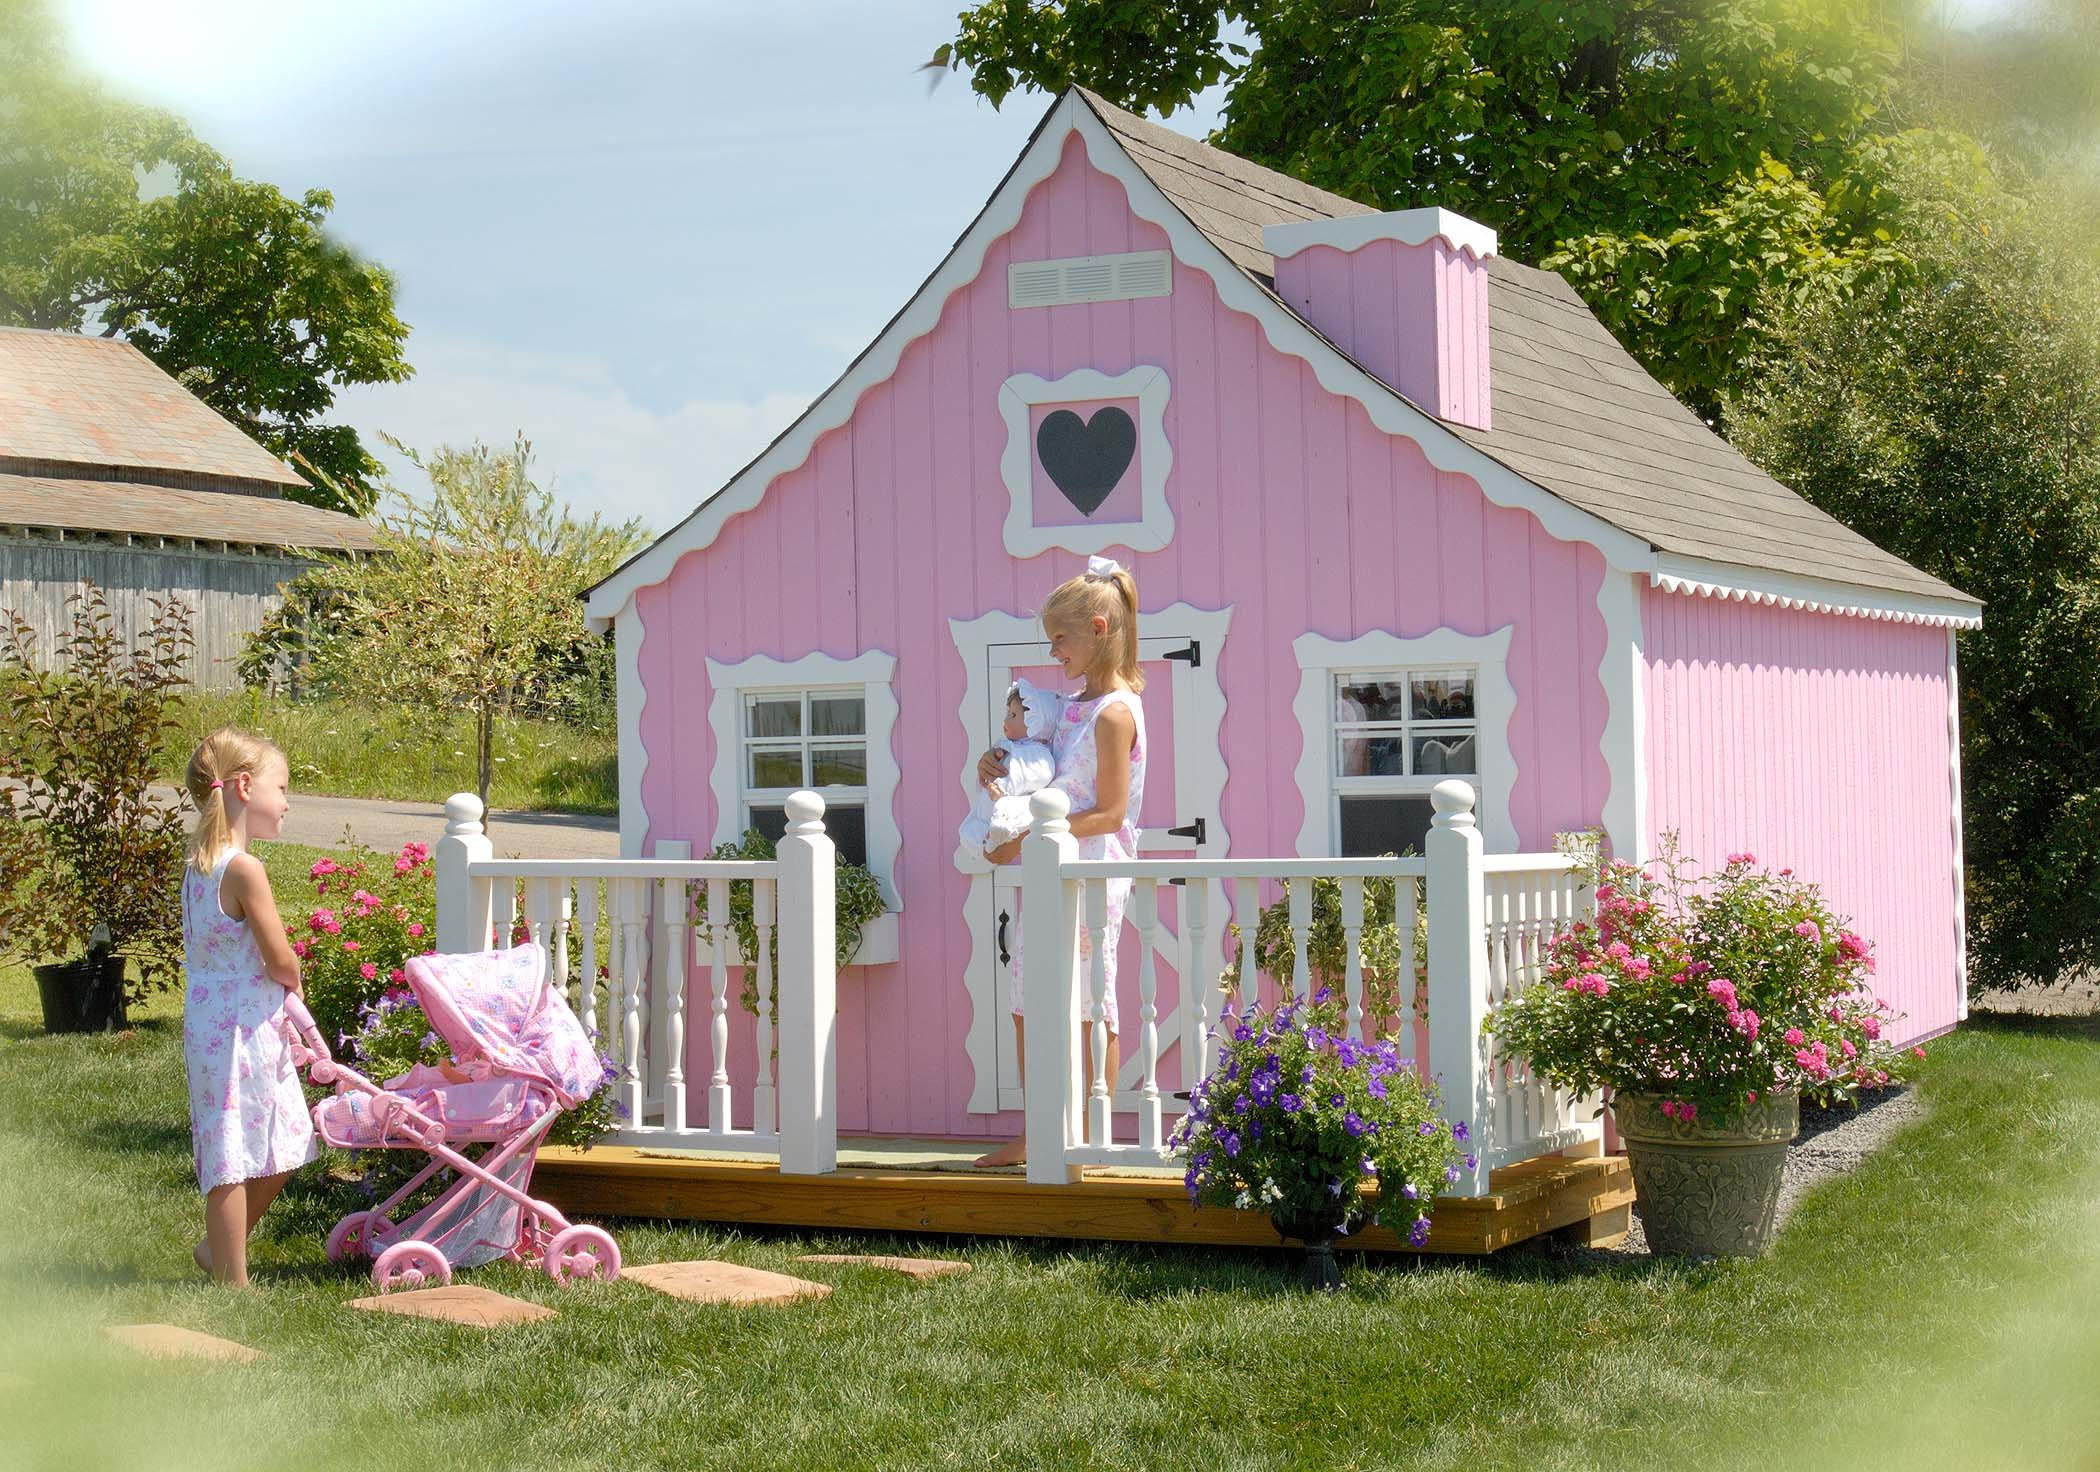 Best ideas about DIY Playhouse Kits . Save or Pin Little Cottage pany Gingerbread DIY Kit Playhouse Now.